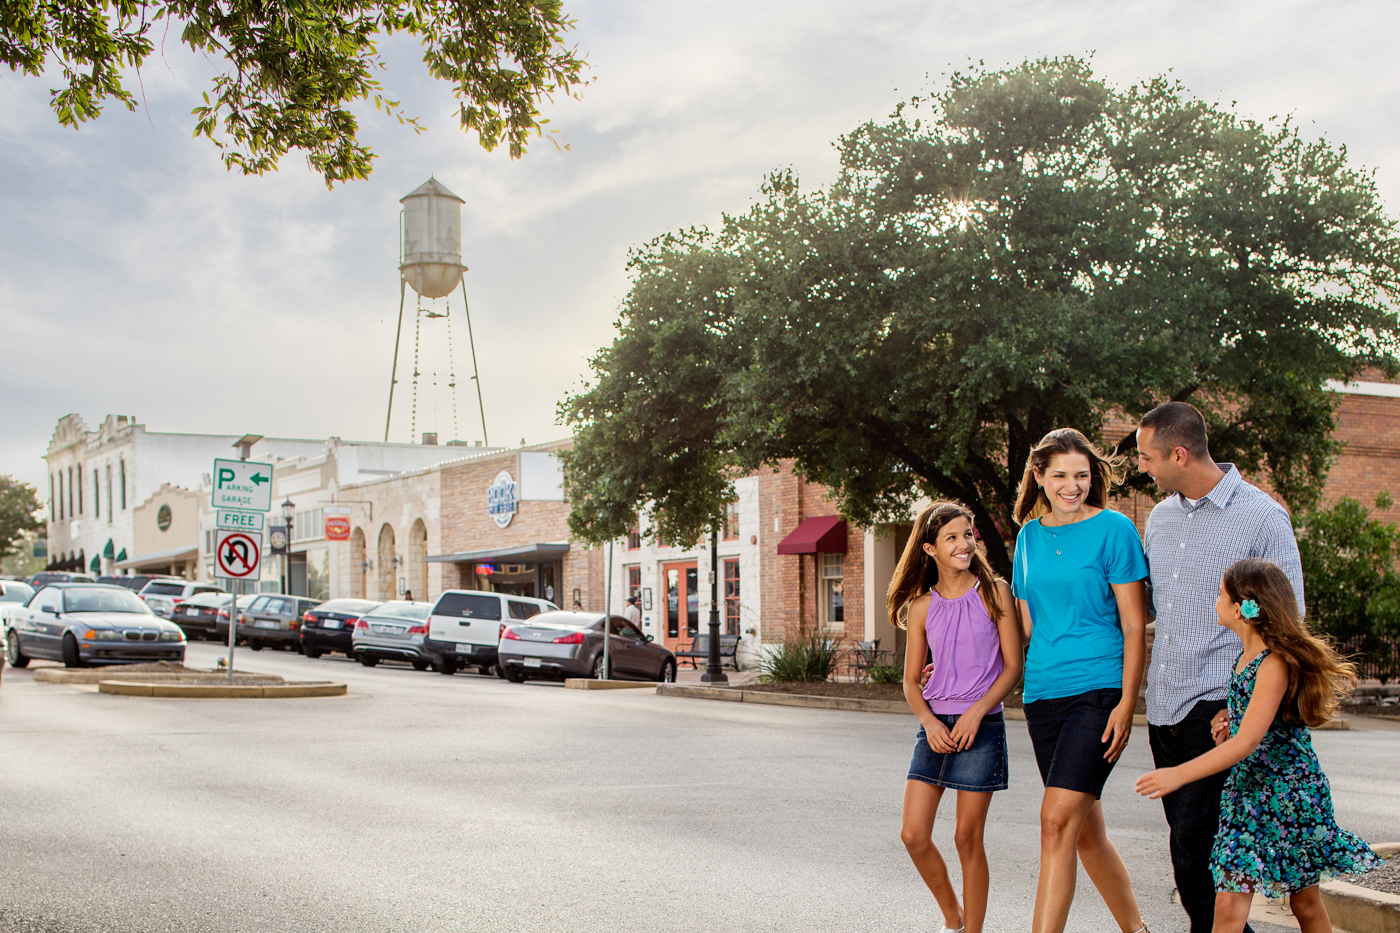 Lifestyle photography on location outside in Round, Rock Texas by Dennis Burnett Photography